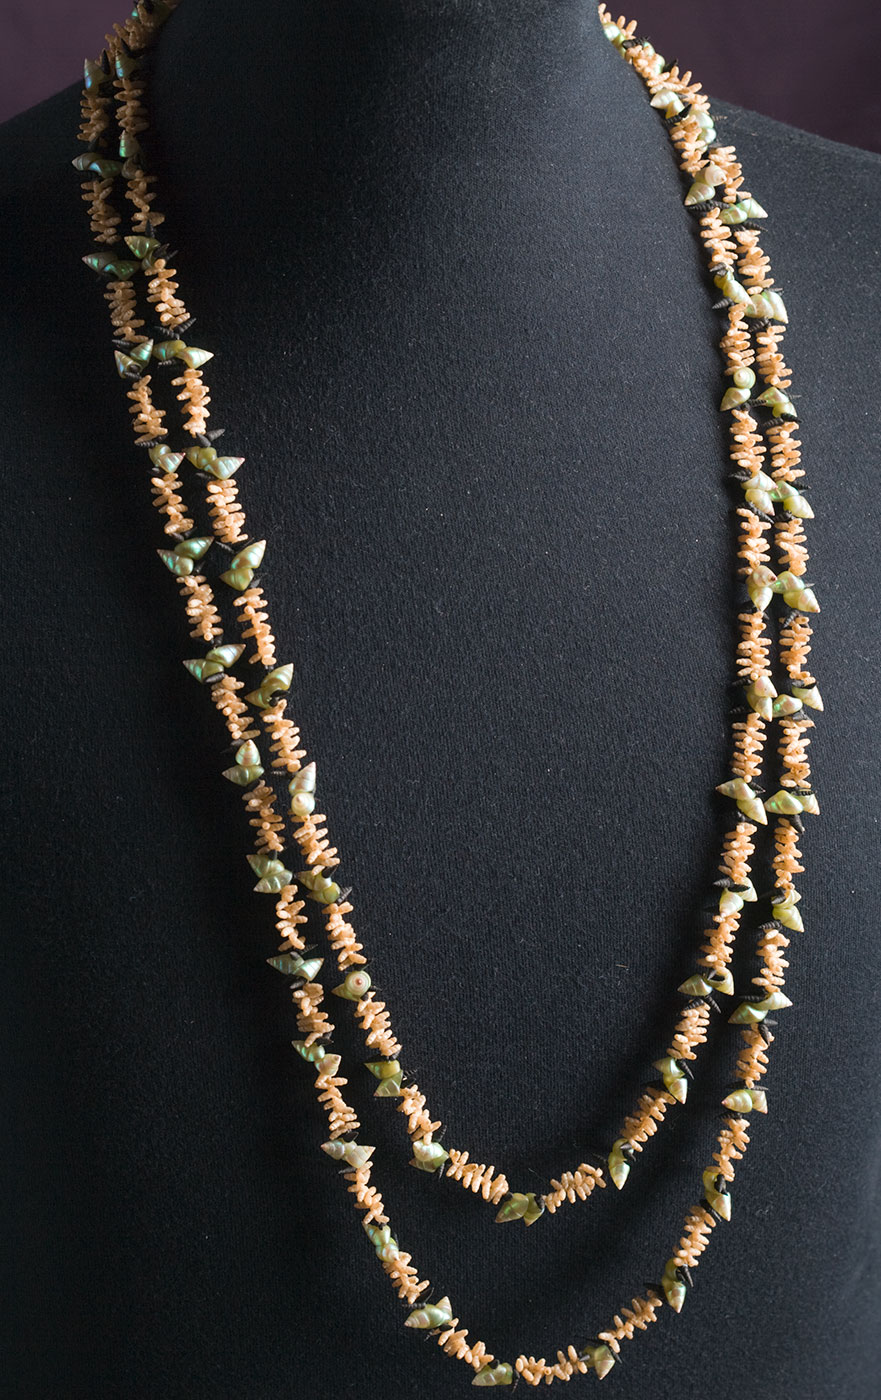 A necklace made from sea shells displayed on a dressmaker's dummy. - click to view larger image